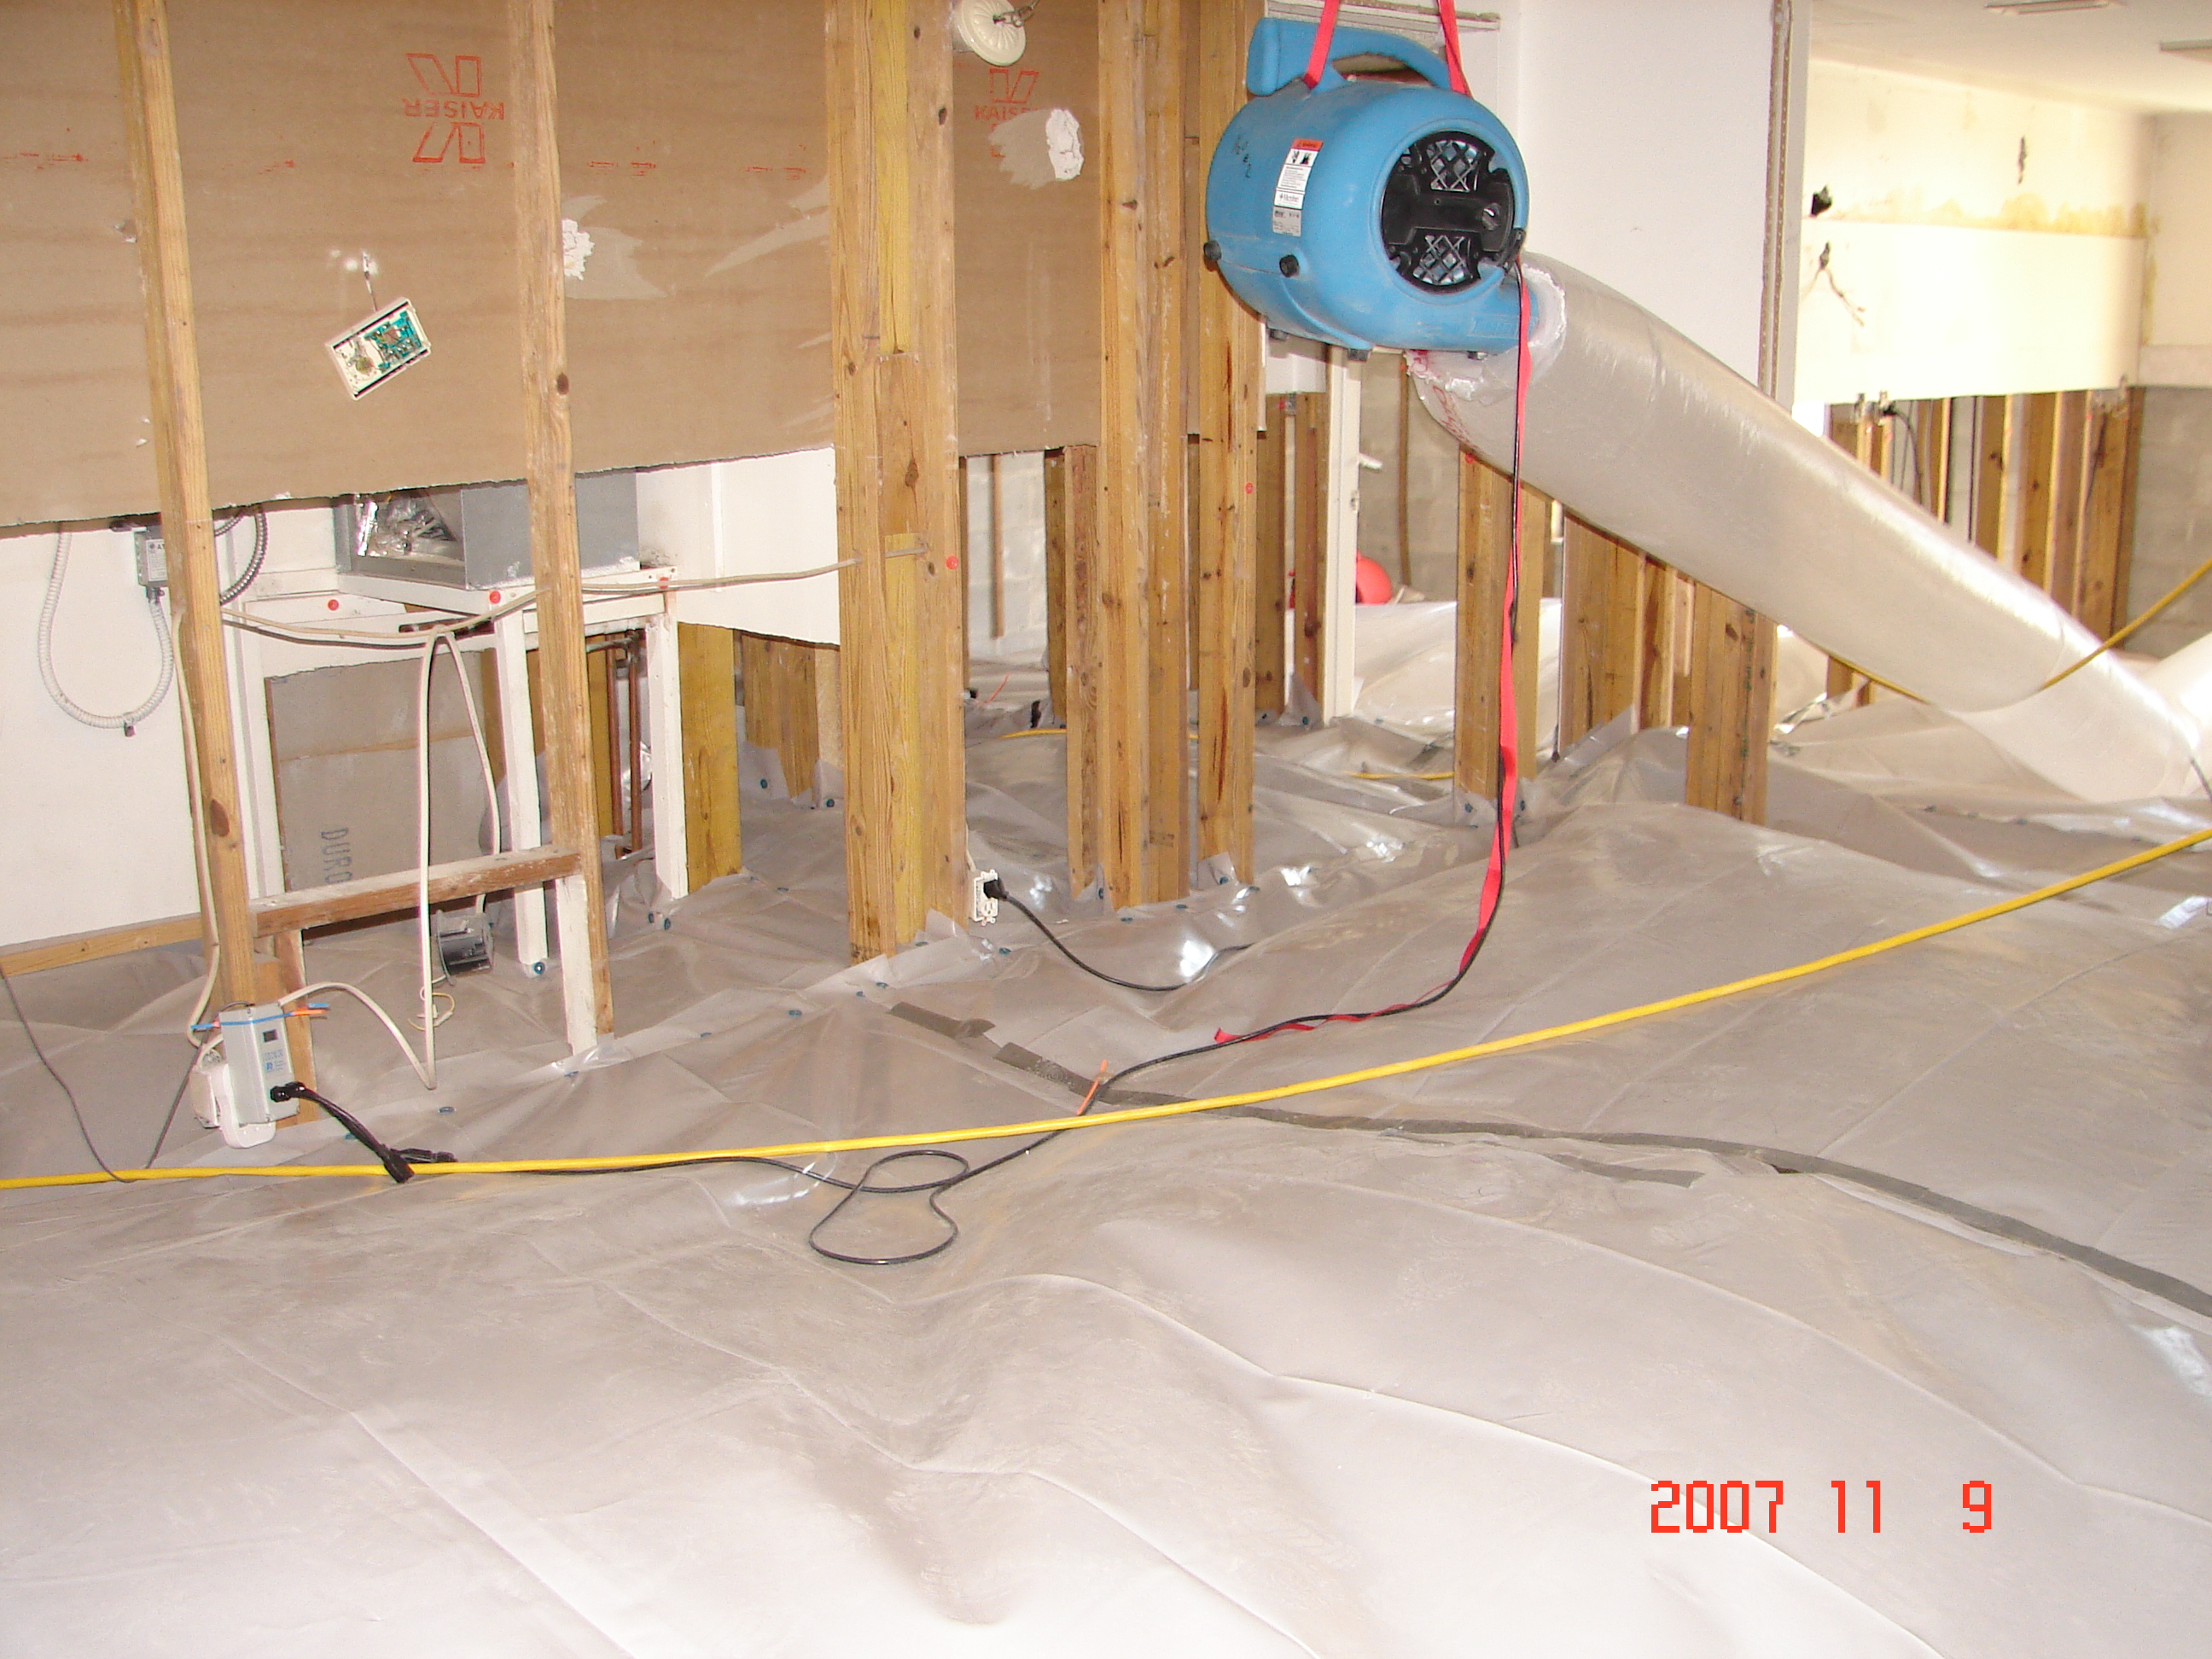 Dry Concrete Remove Water From Wet